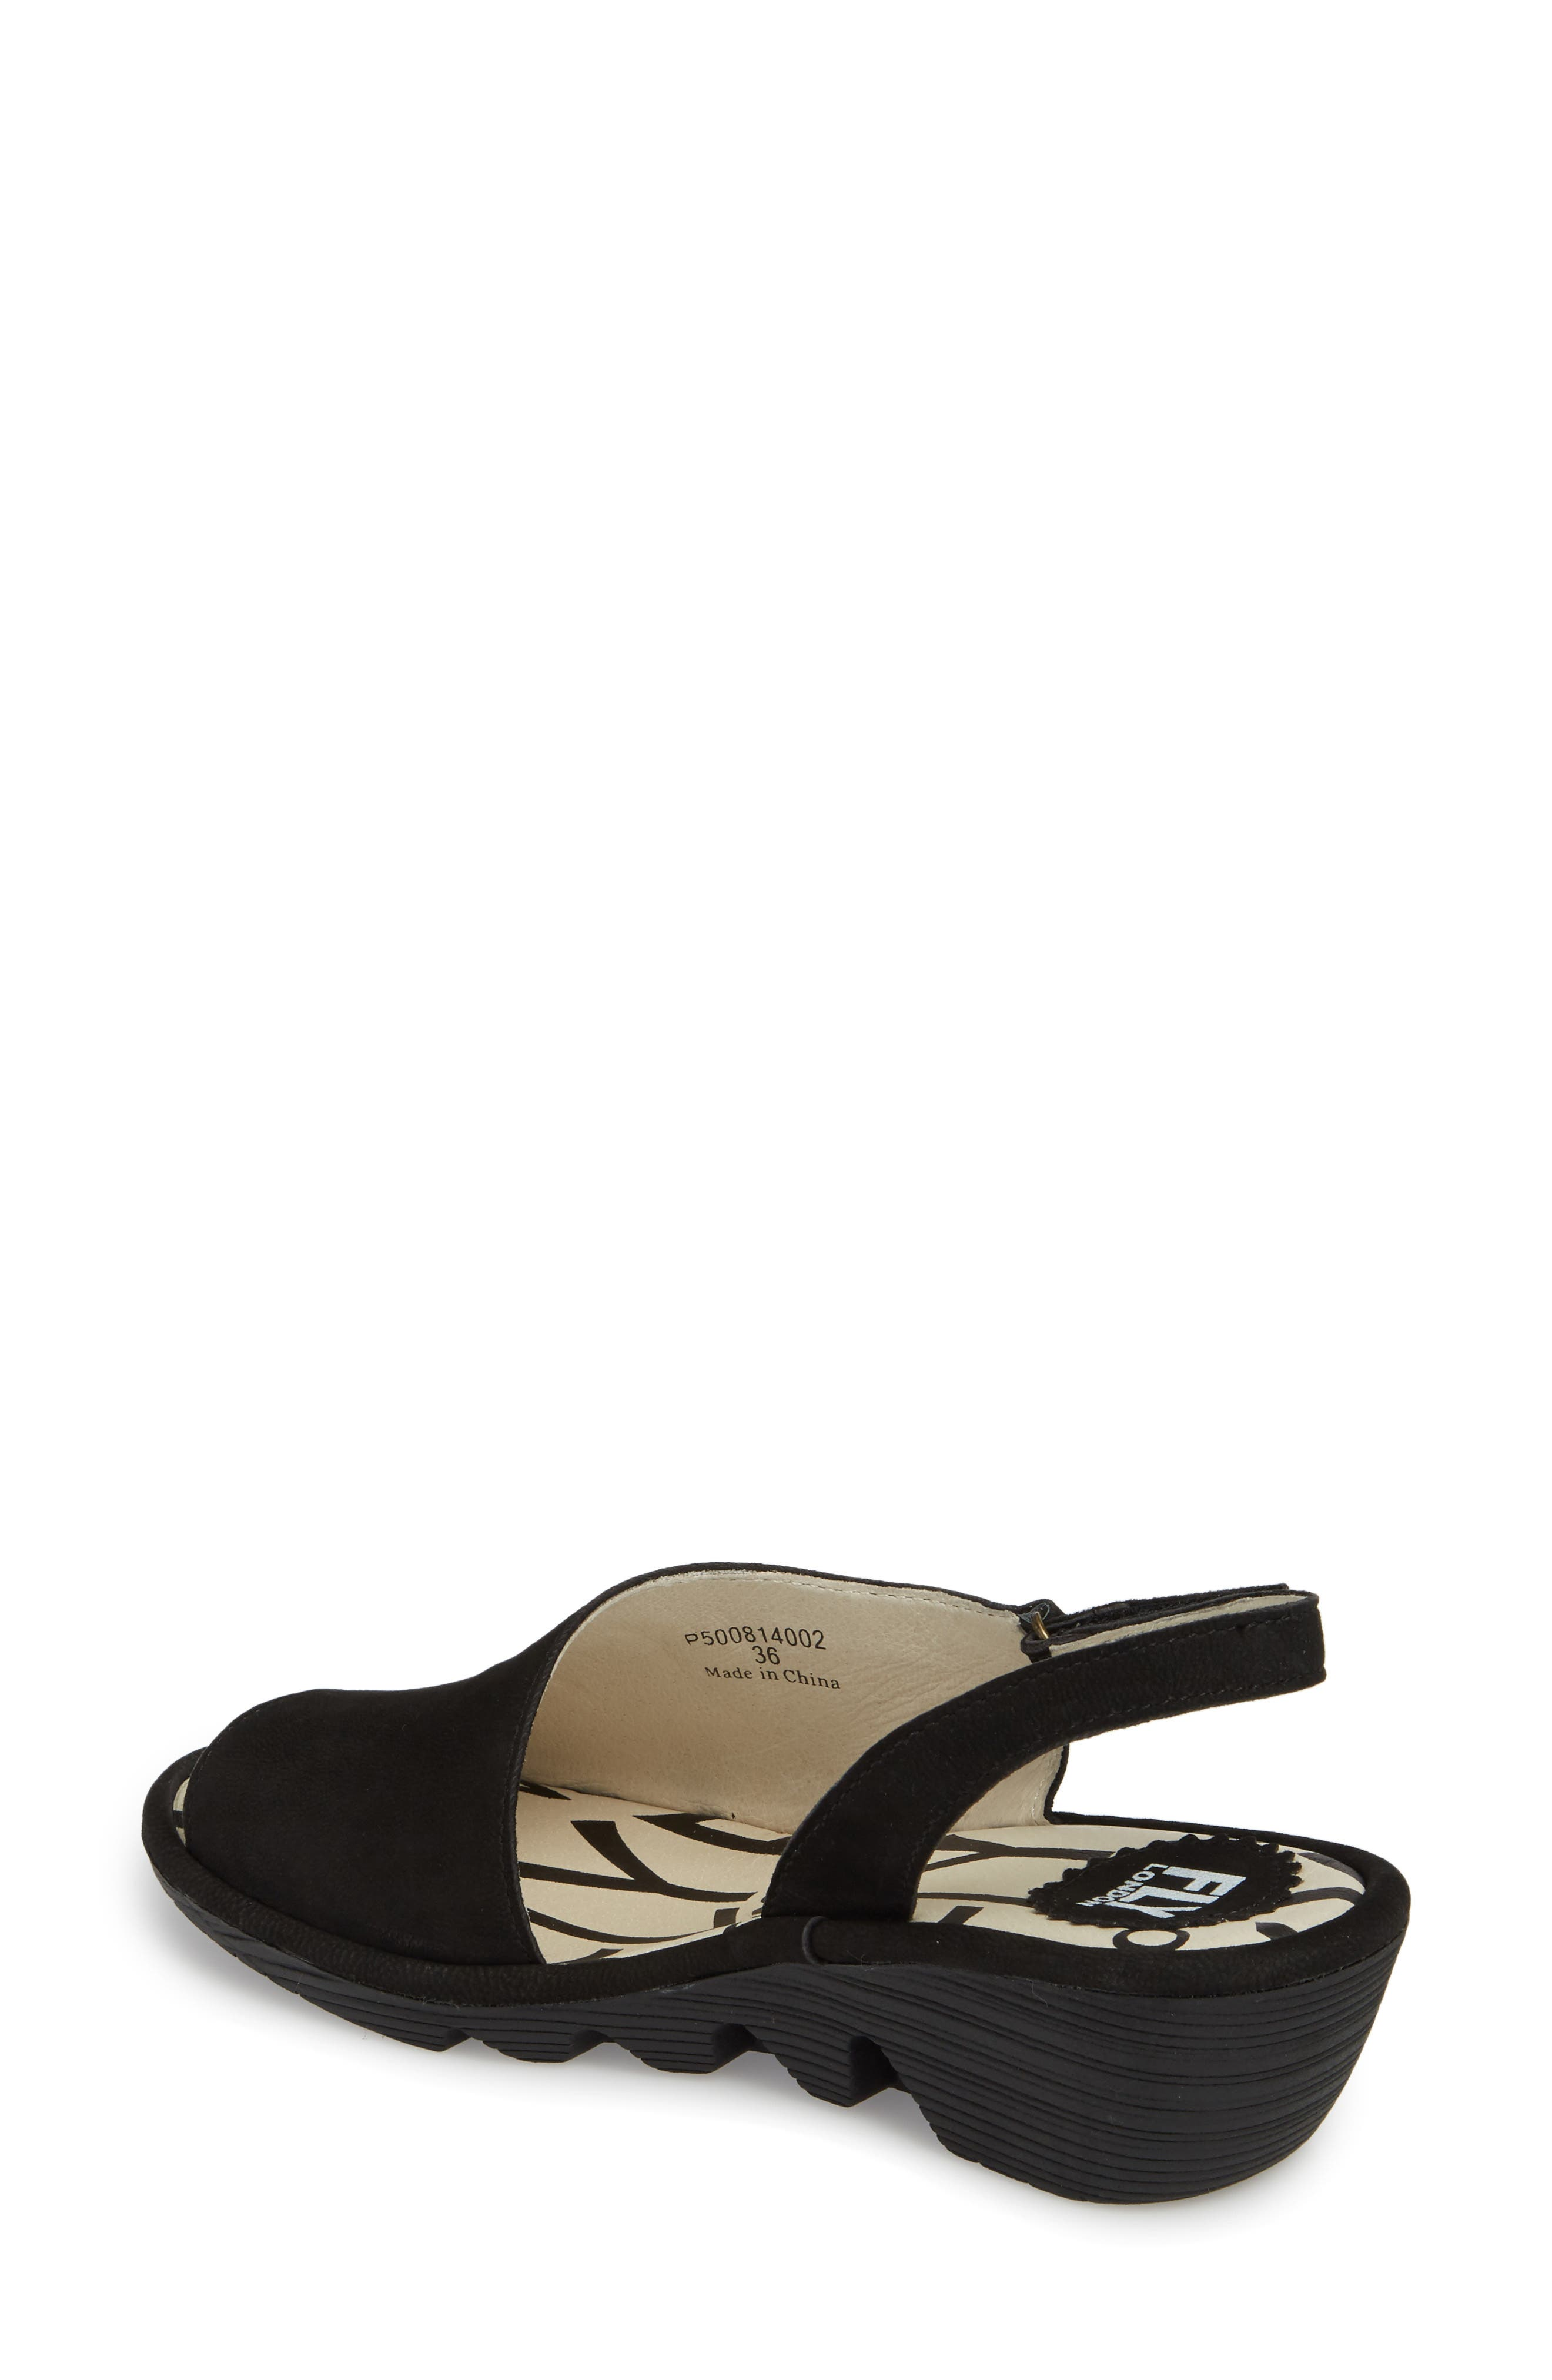 Palp Wedge Sandal,                             Alternate thumbnail 2, color,                             BLACK CUPIDO LEATHER